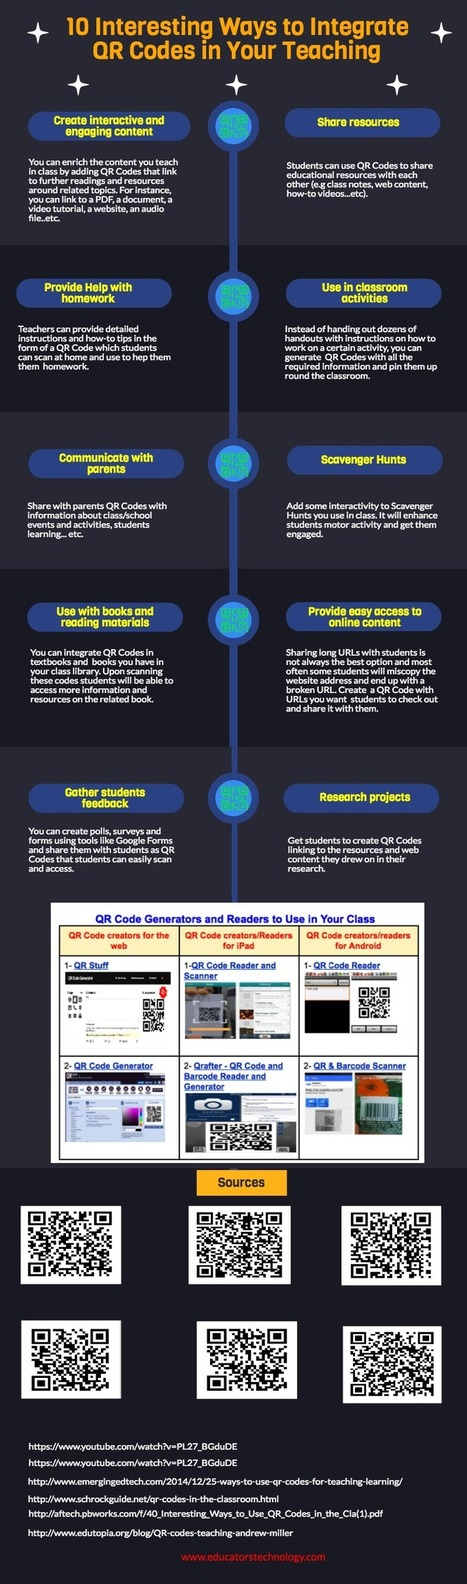 10 Interesting Ways to Integrate QR Codes in Your Teaching (Infographic) ~ Educational Technology and Mobile Learning | Aprendizaje y redes abiertas. | Scoop.it